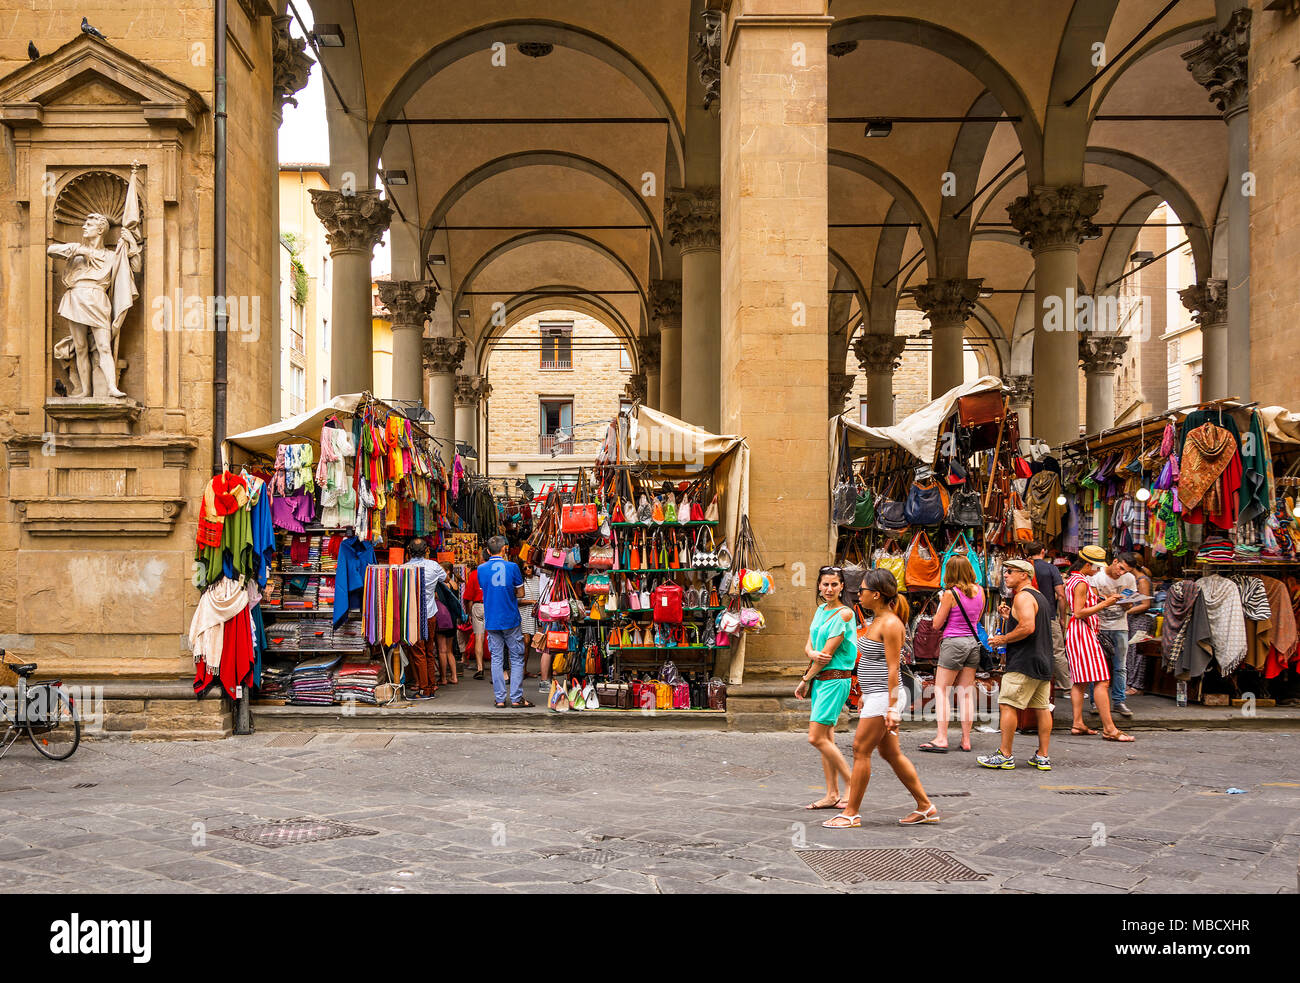 Florence, Italy, June 2015: tourists and Florentines walking and shopping in the historic Mercato del Porcellino (pig market) in the center of Florenc - Stock Image